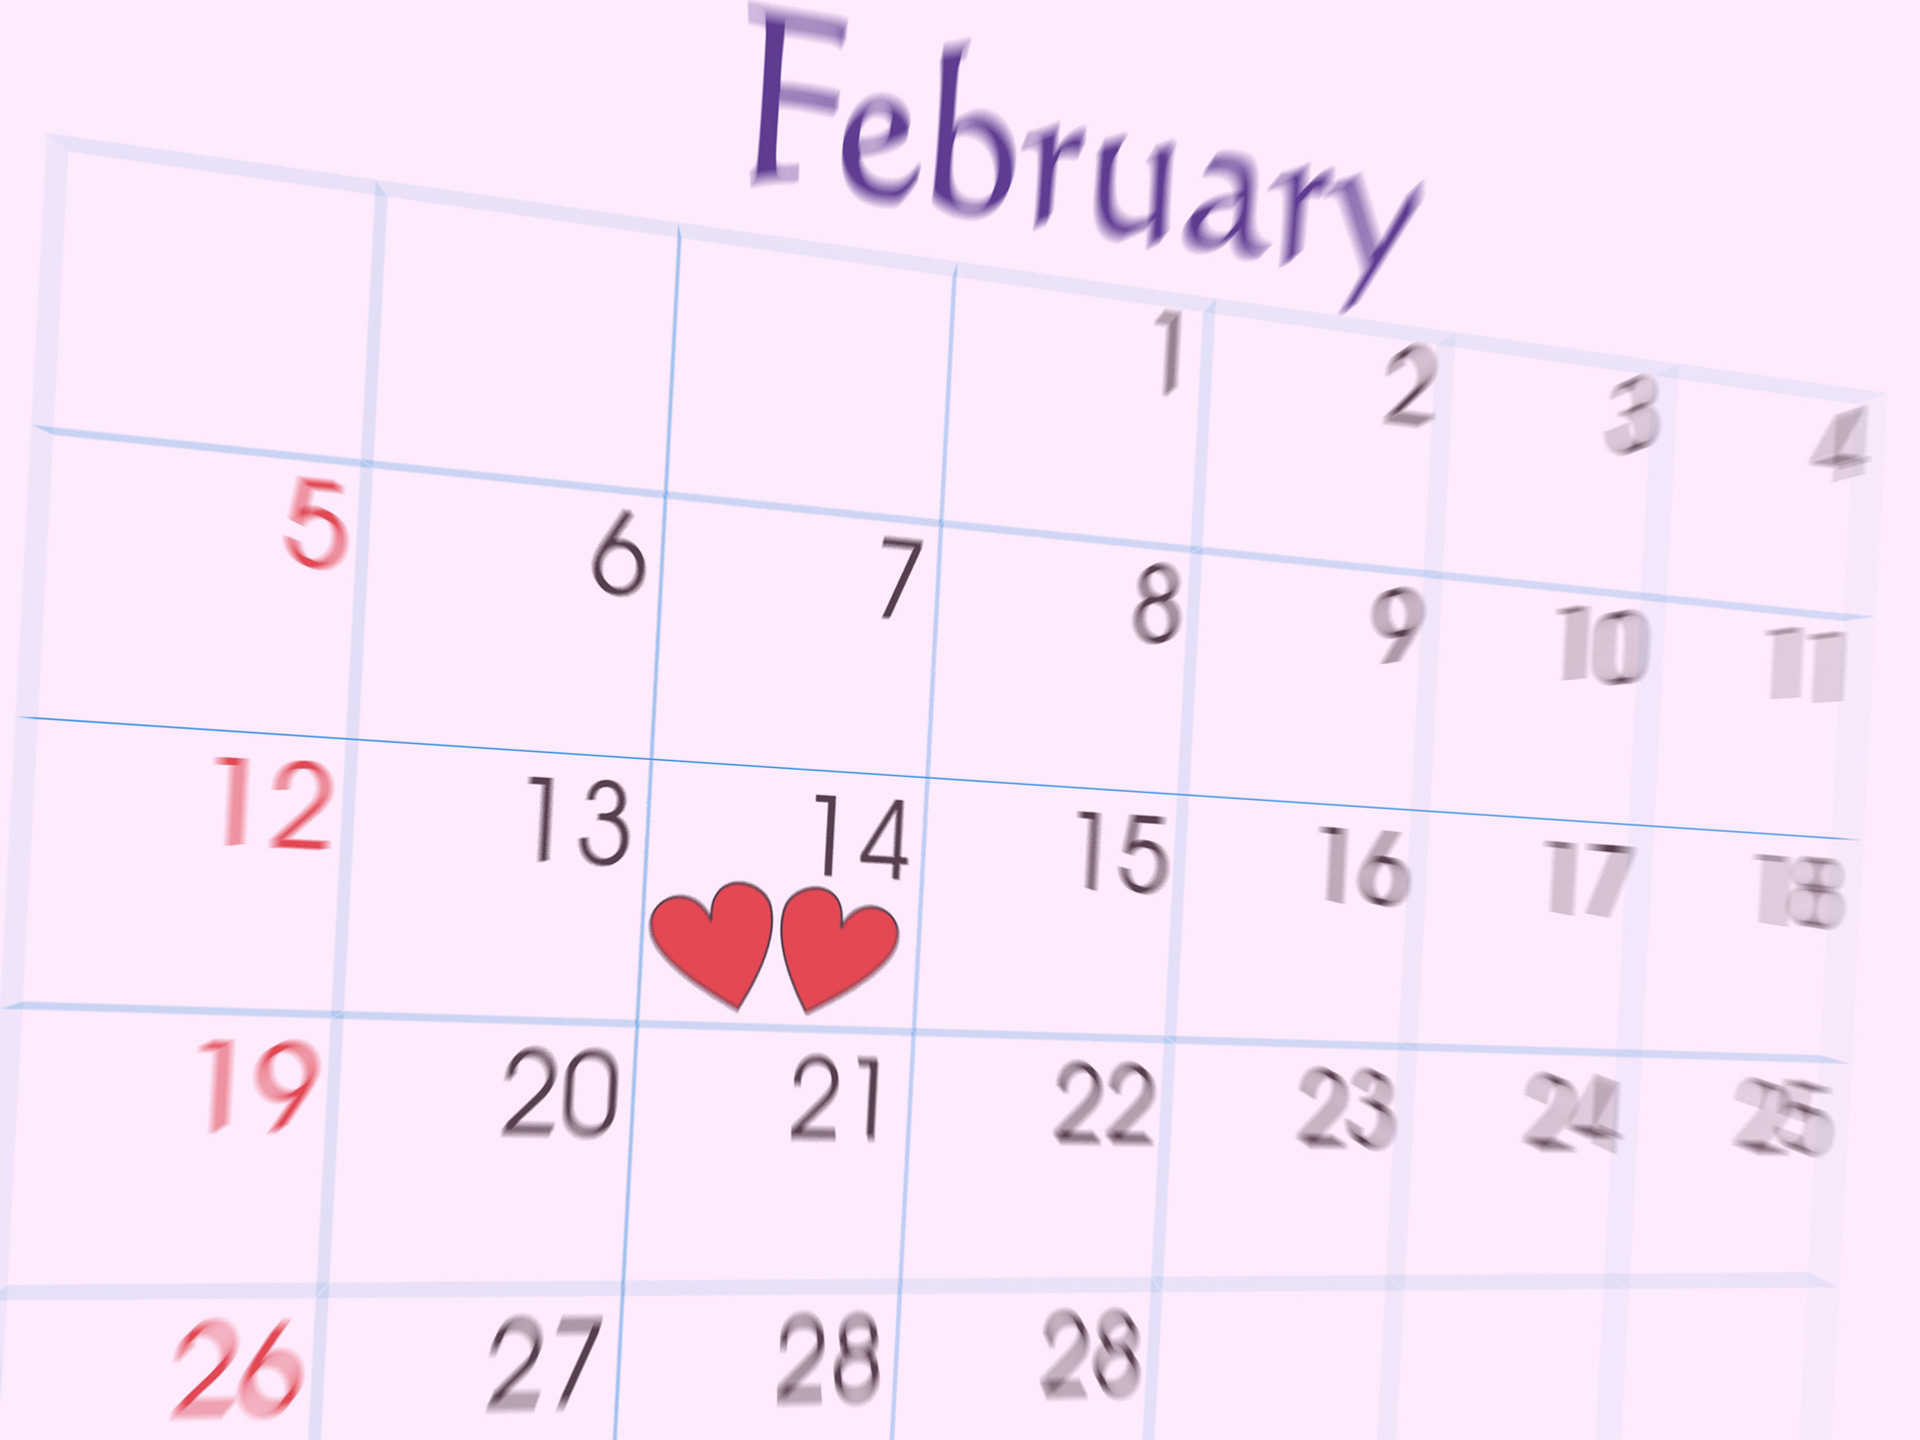 February Special Day 14th7181310017 - February Special Day 14th - Special, Millions, February, 14th